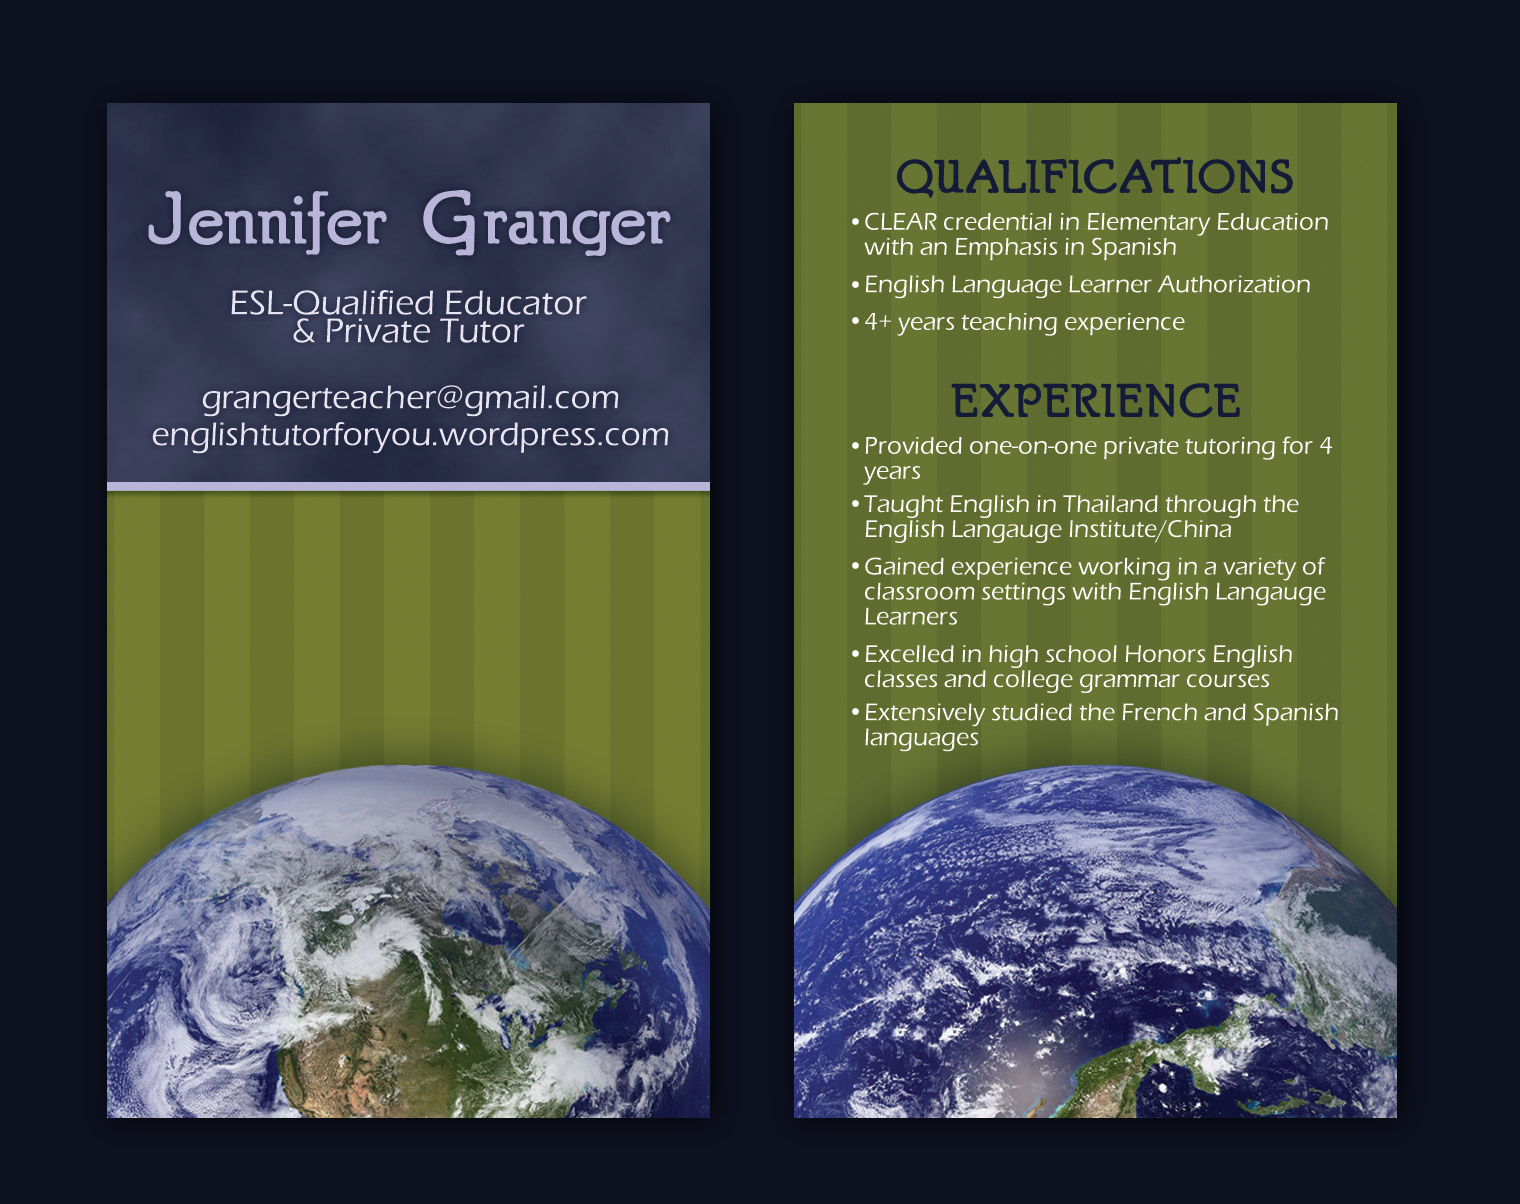 Jen granger business cards nashville graphic designer franklin published june 18 2010 categories business card colourmoves